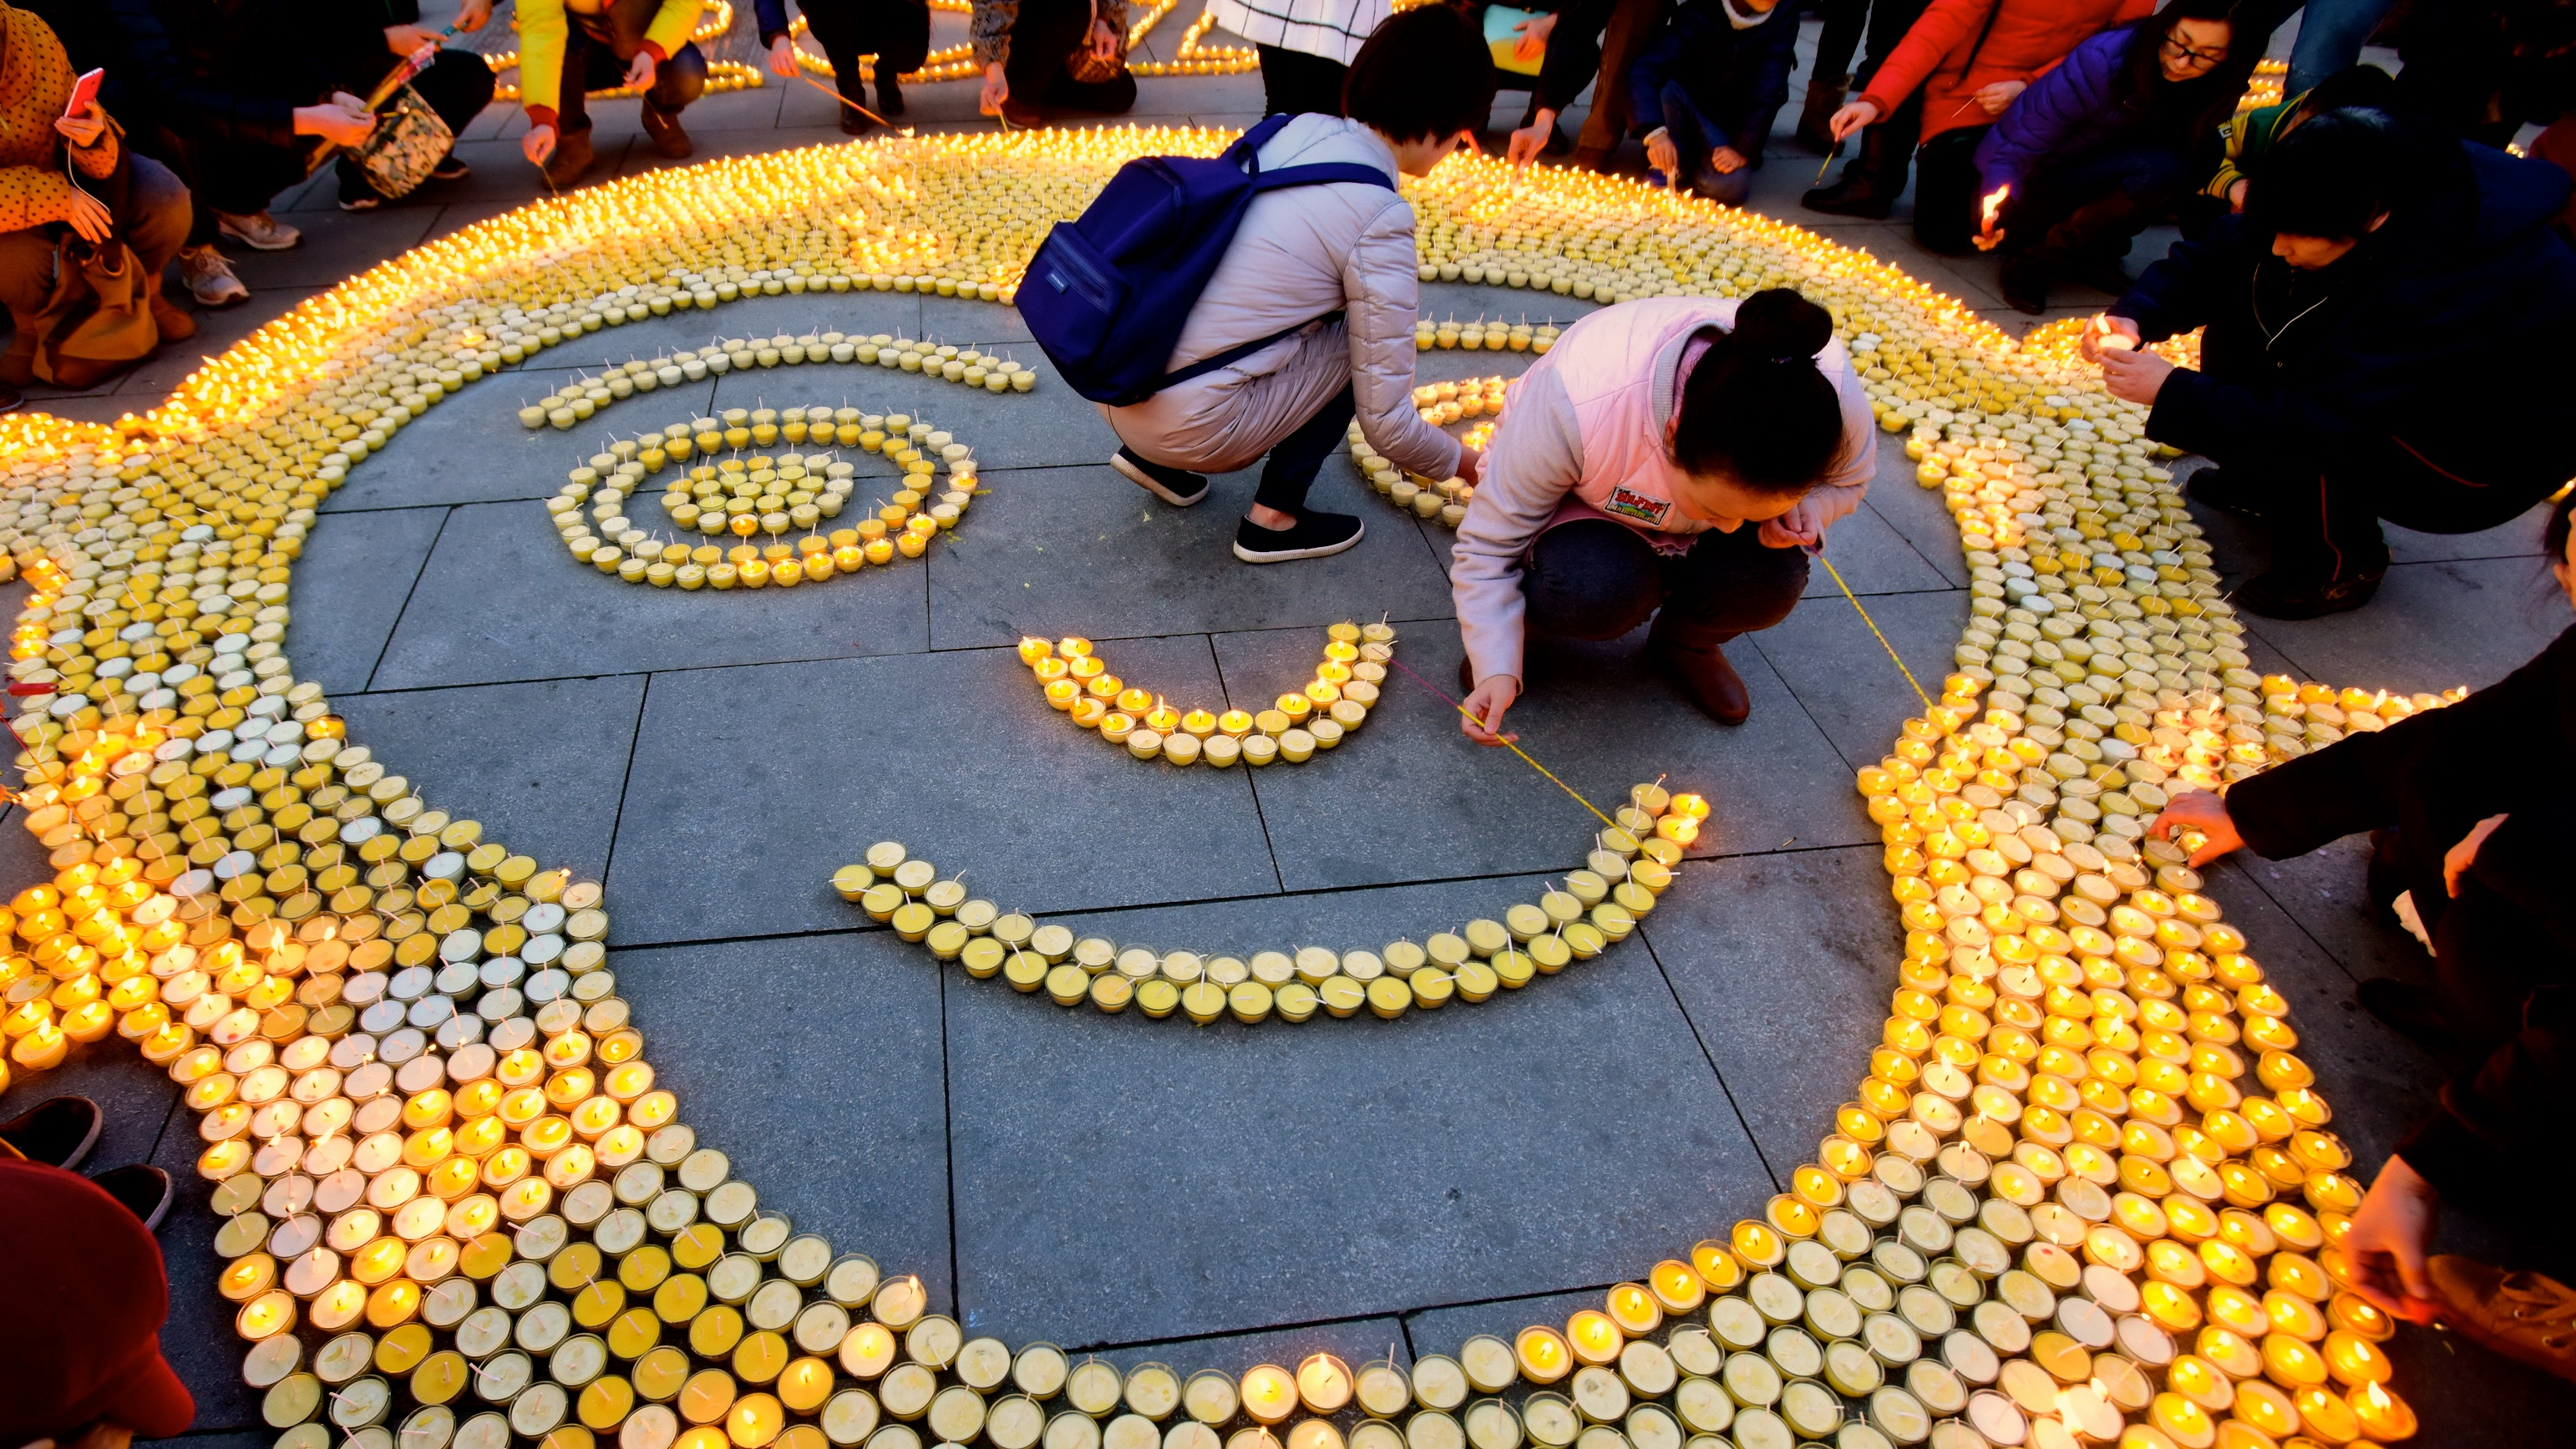 People place candles in the shape of a monkey face to pray for good luck at Guangren Temple in China.